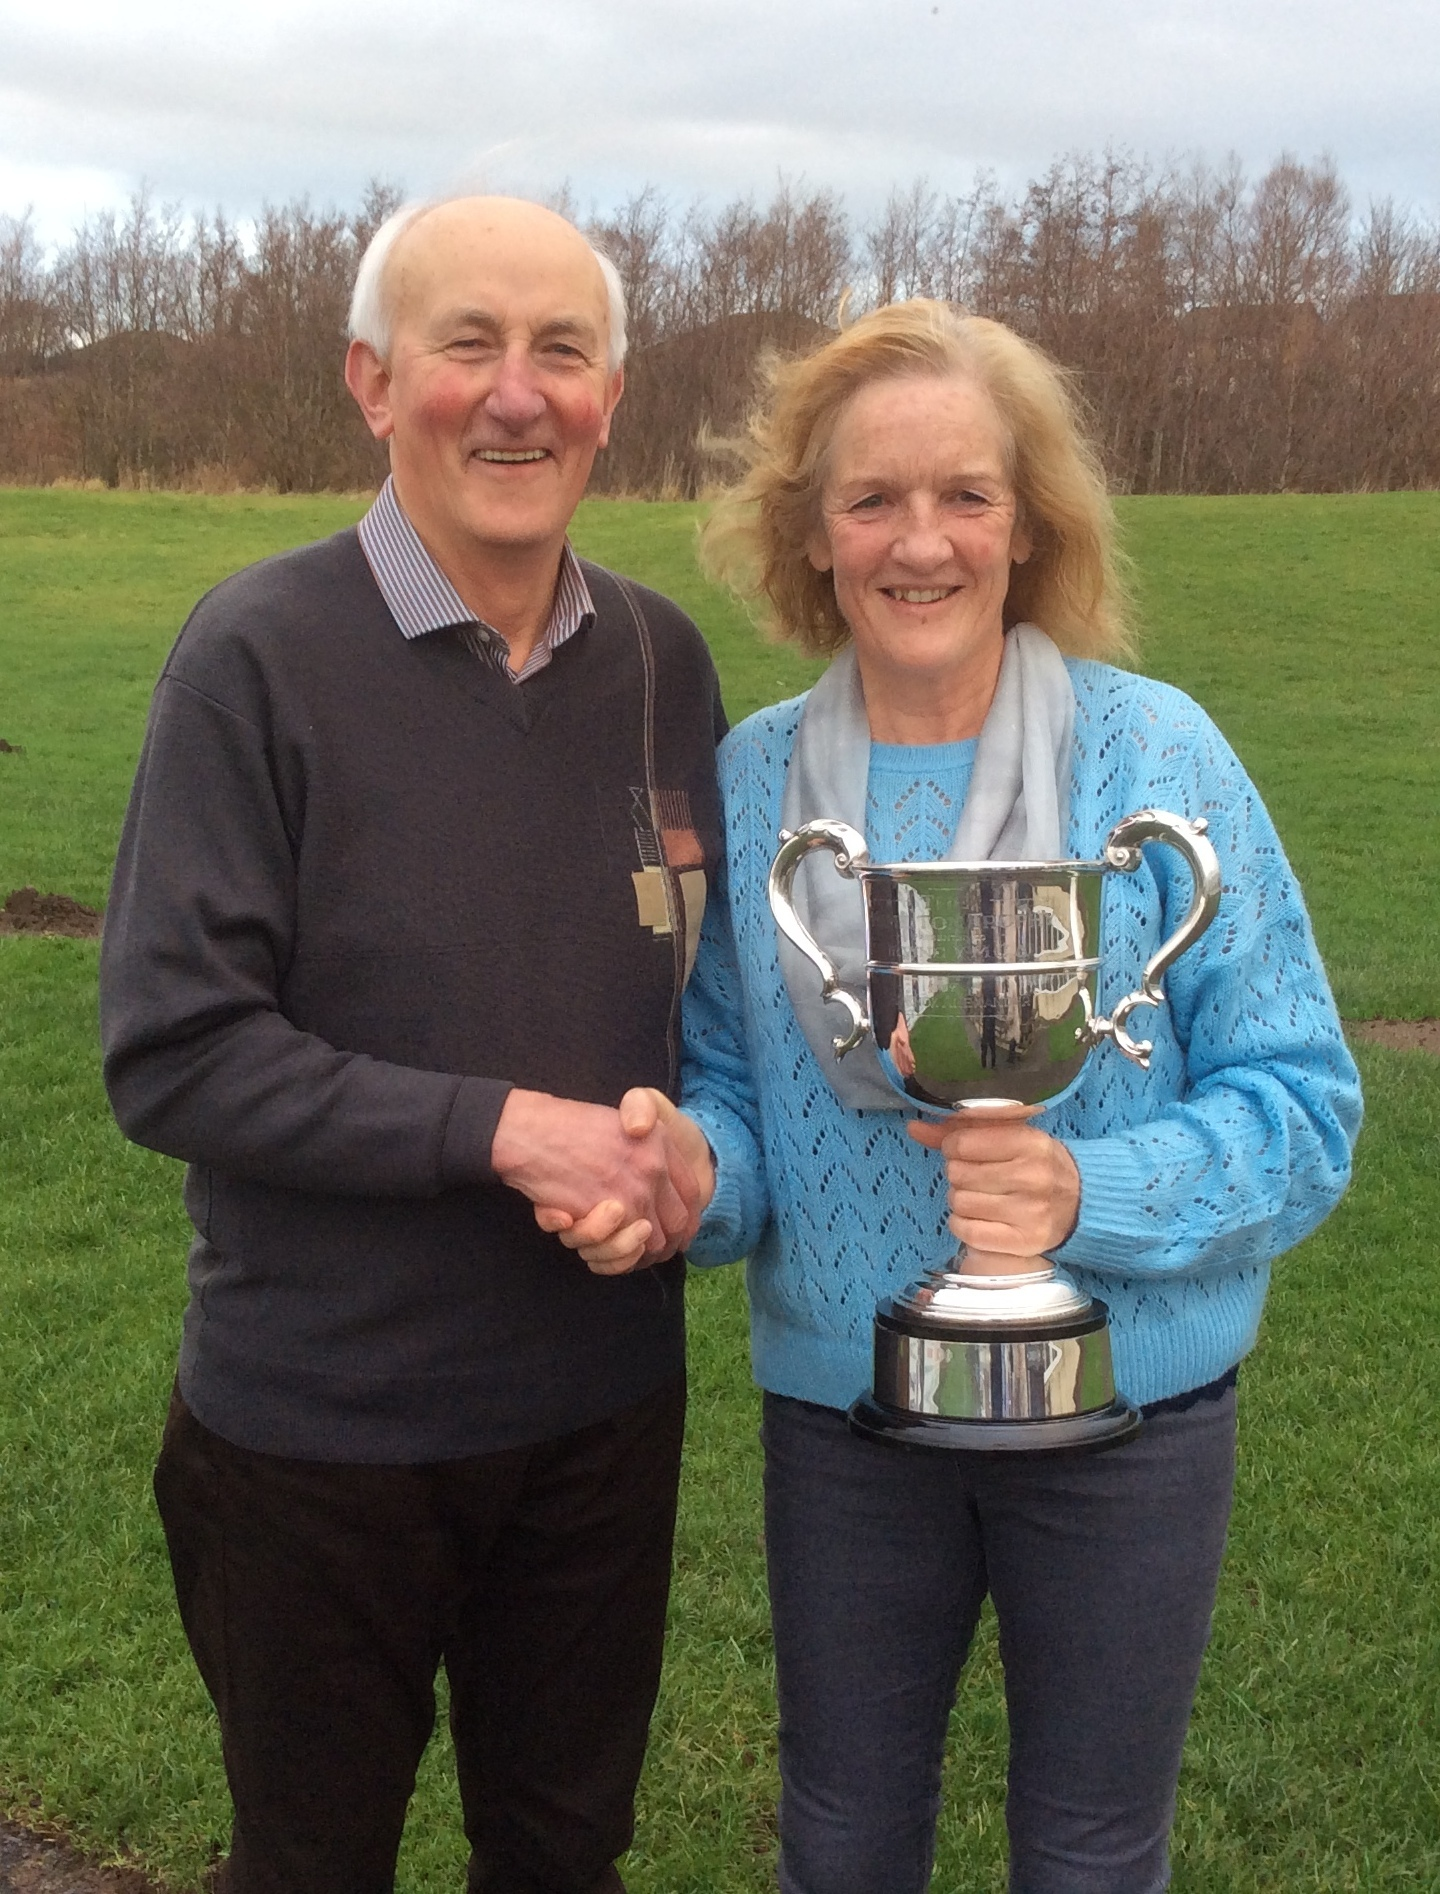 WINNING RUNNER: David King presents the Hamilton Trophy to Helen Morton